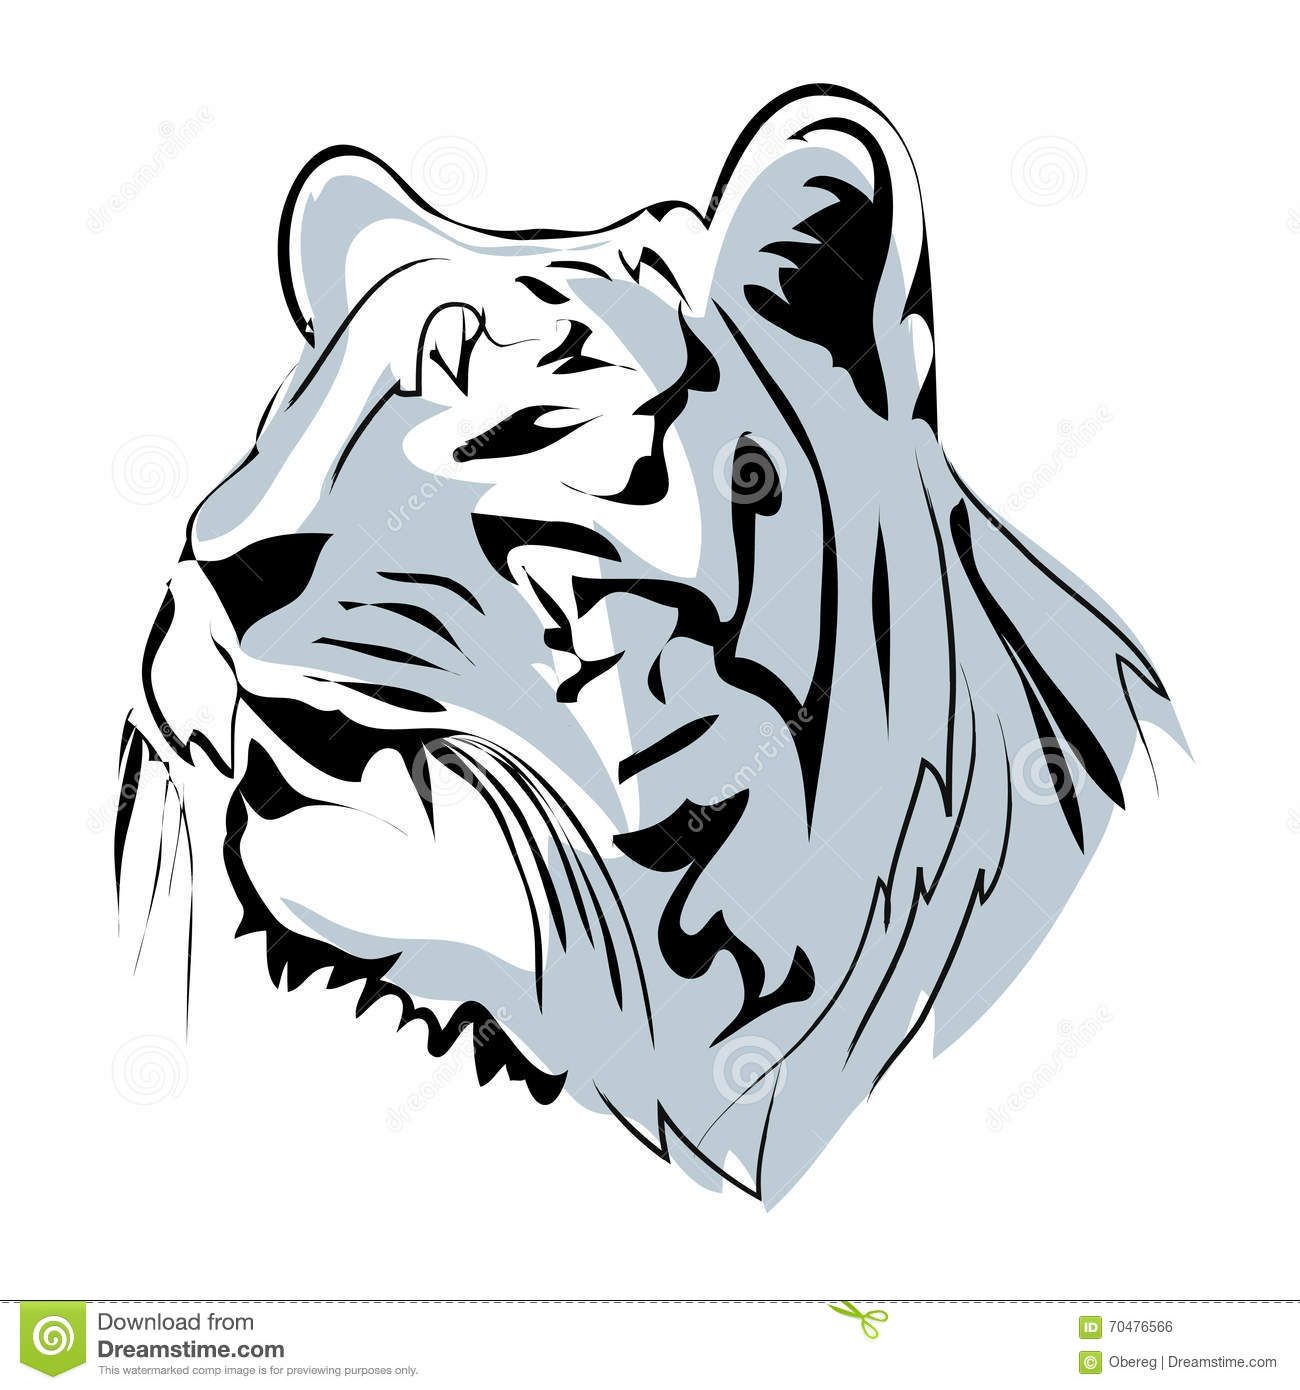 99 Learn How To Draw A Tiger Face Big Cats Step By Step Drawing